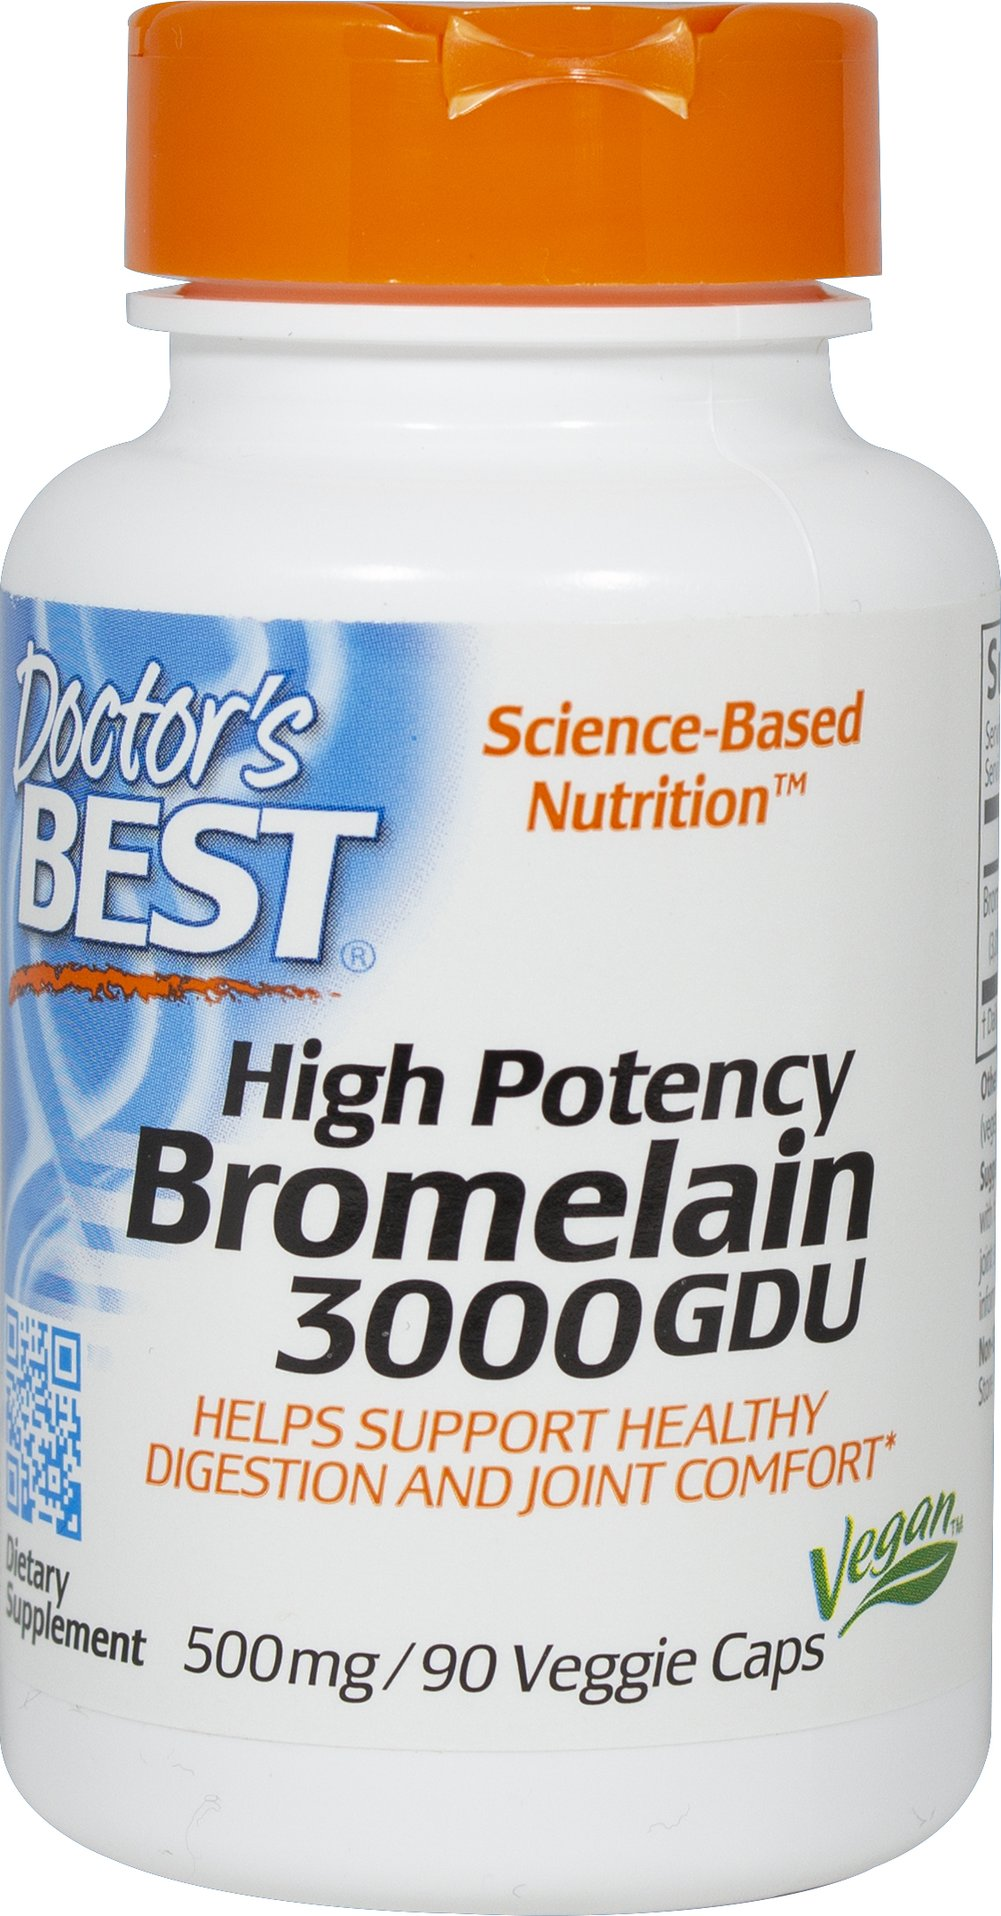 Best 3000 GDU Bromelain  90 Vegi Caps 500 mg $15.29